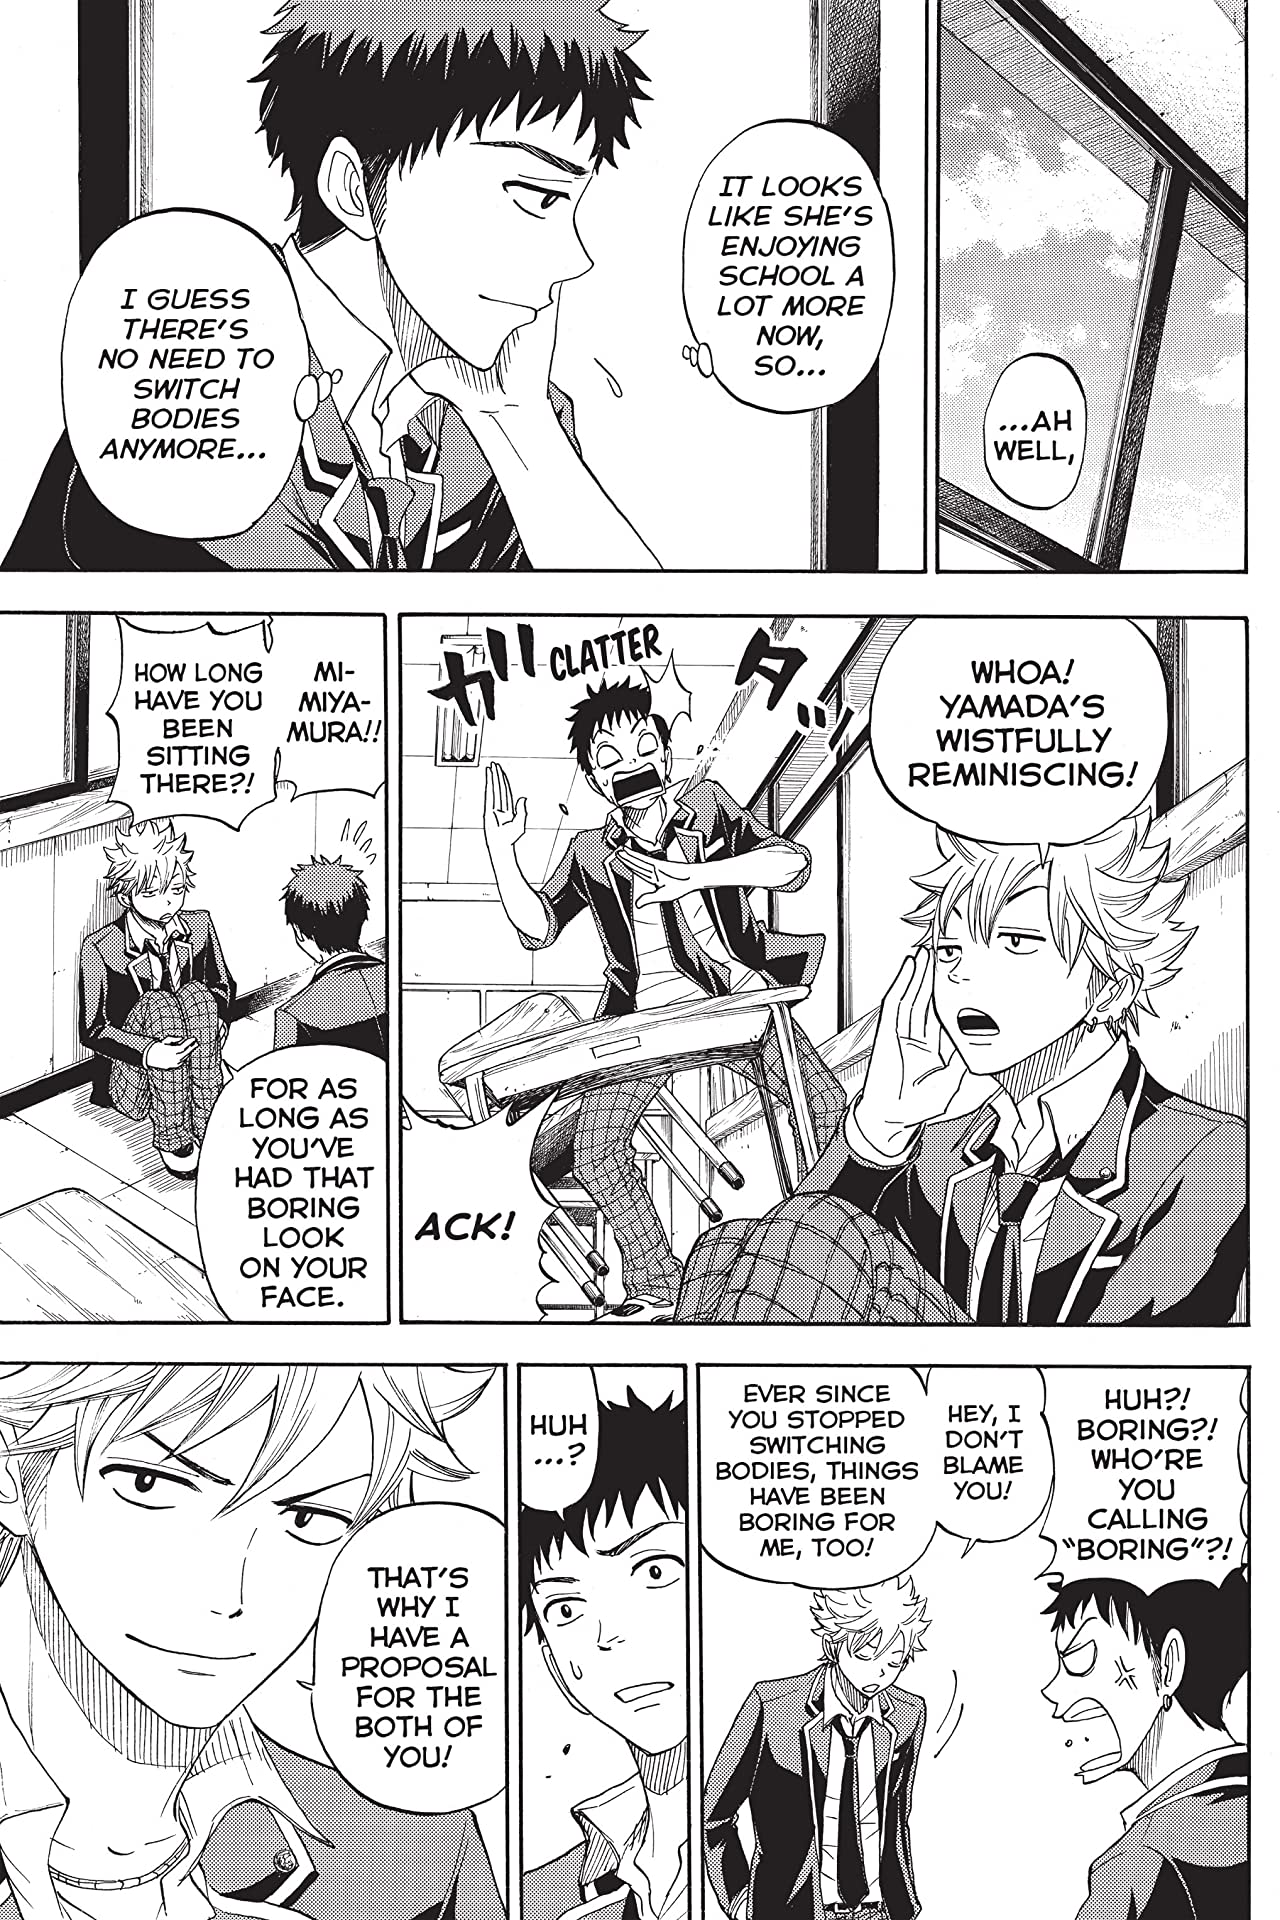 Yamada-kun and the Seven Witches #5